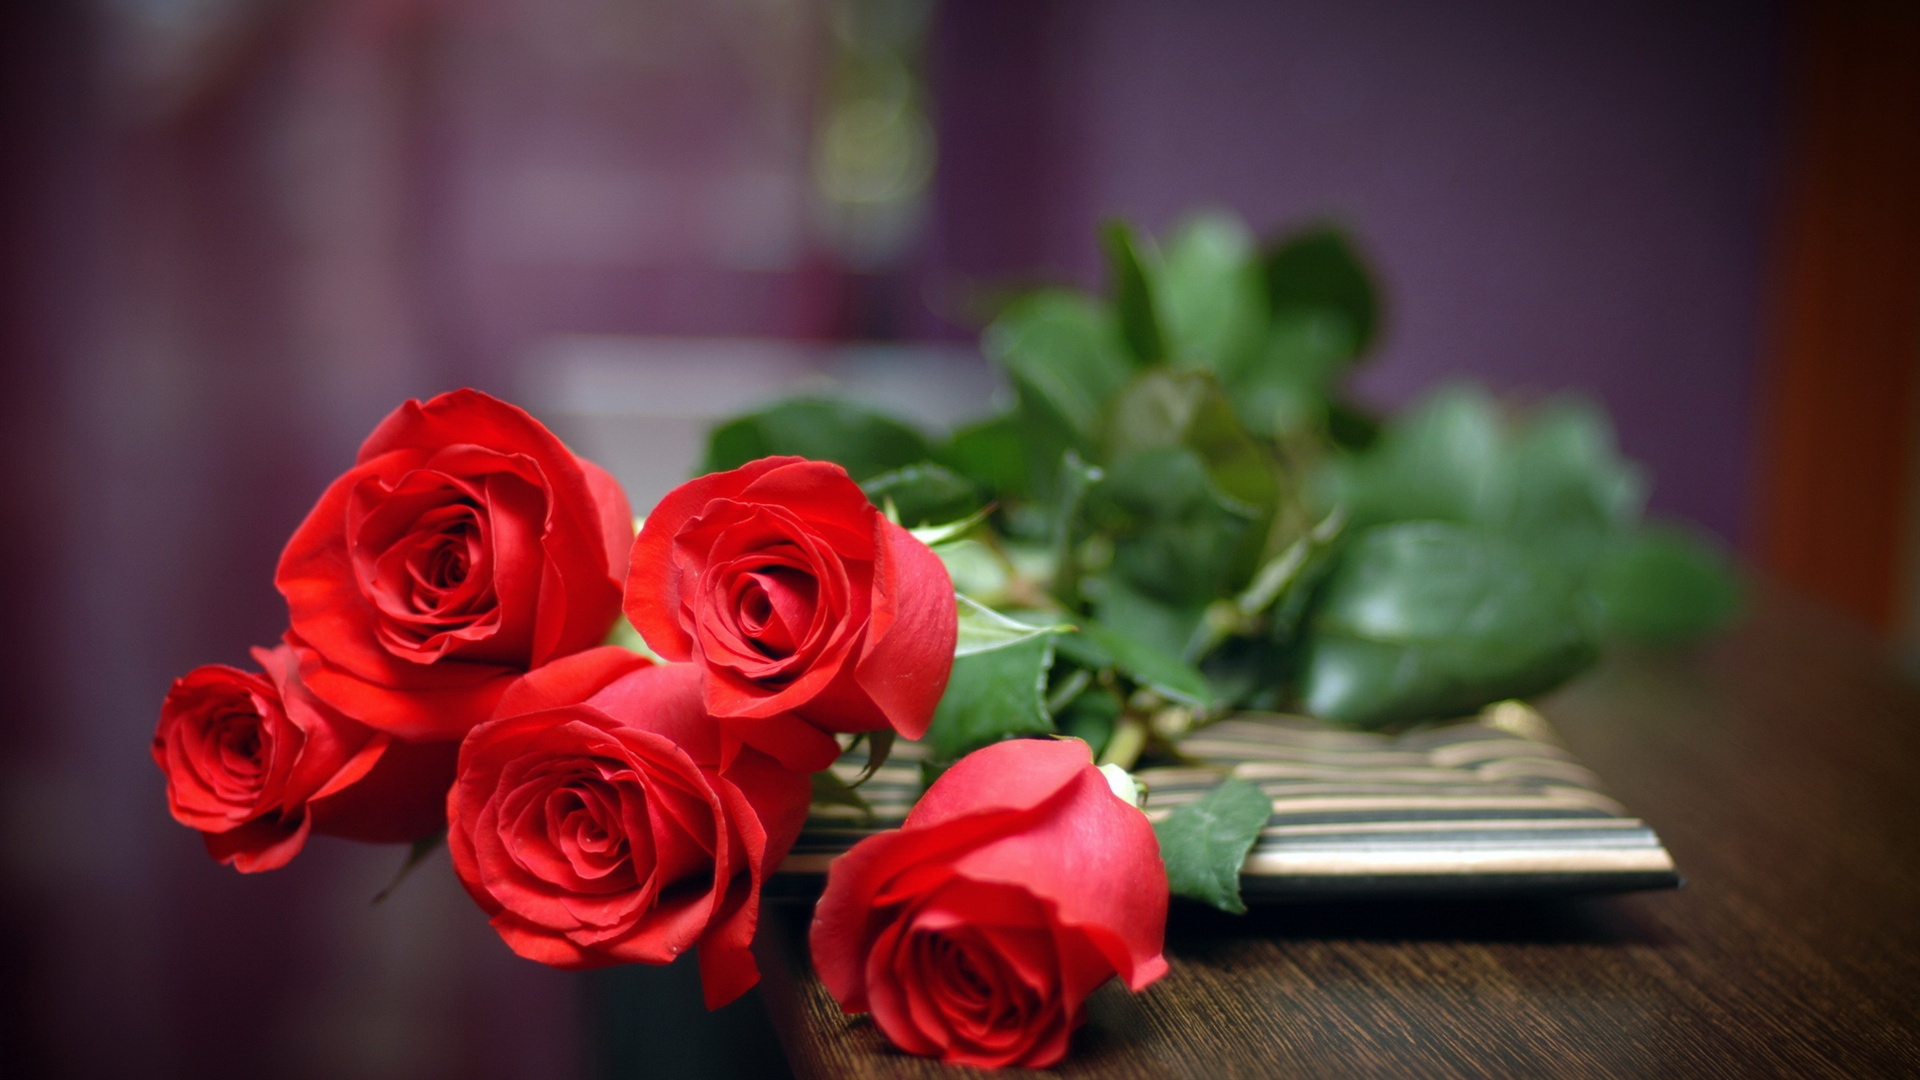 Gift Of Love Wallpaper : Download Wallpaper 1920x1080 A Gift of Love, five red roses Full HD Background